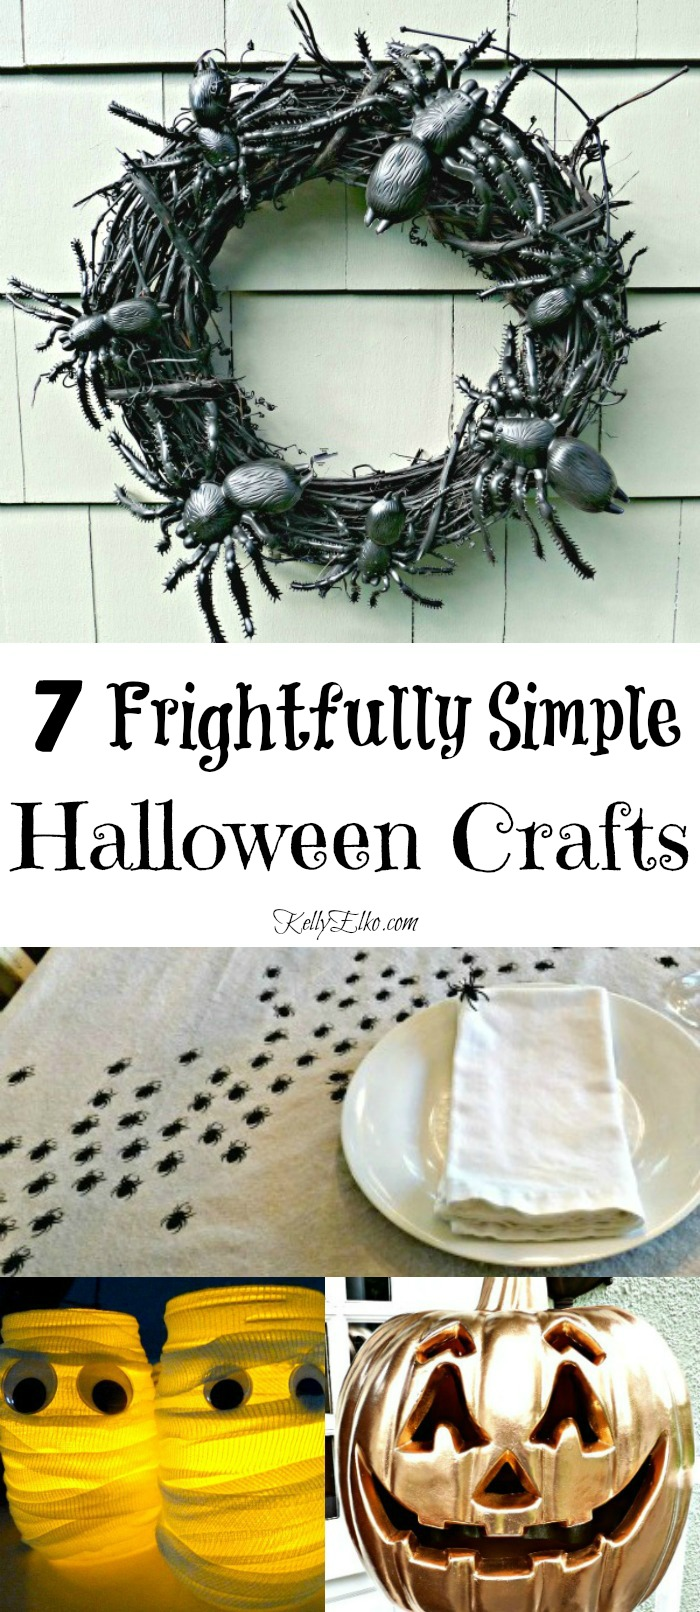 Simple Halloween Craft Ideas - these are so creative! kellyelko.com